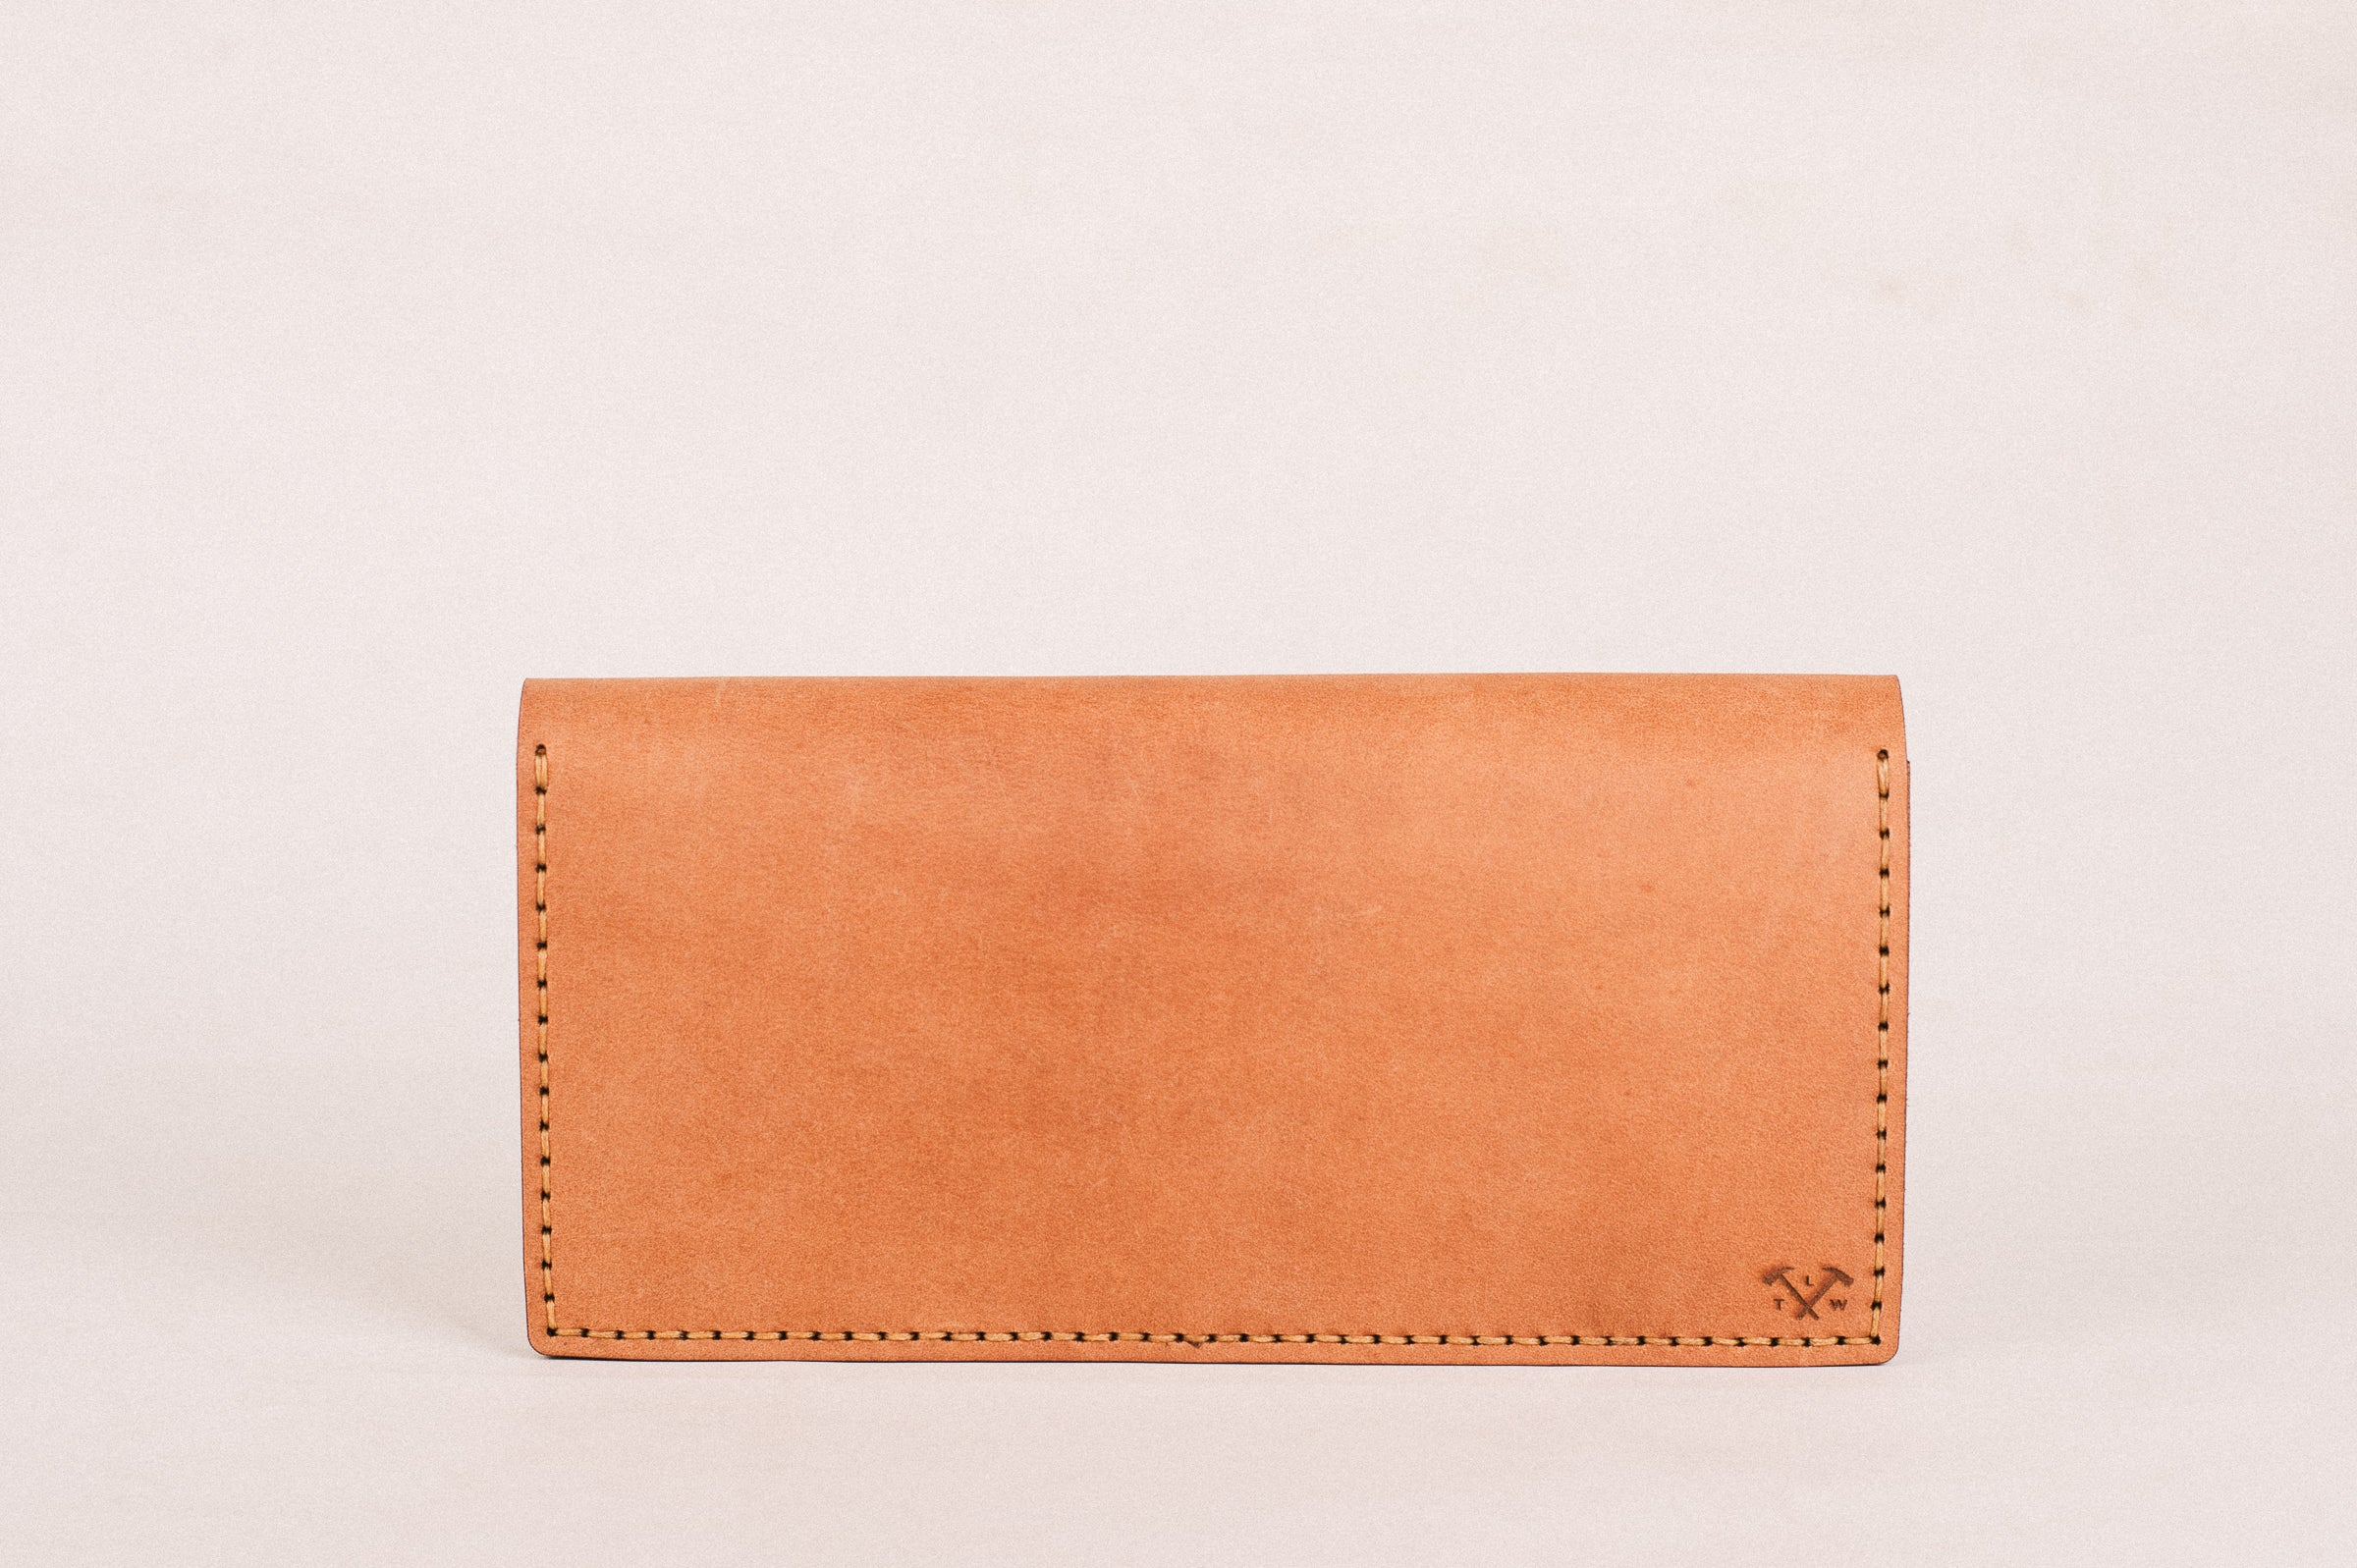 The Alongsider - Ethical Leather Wallet